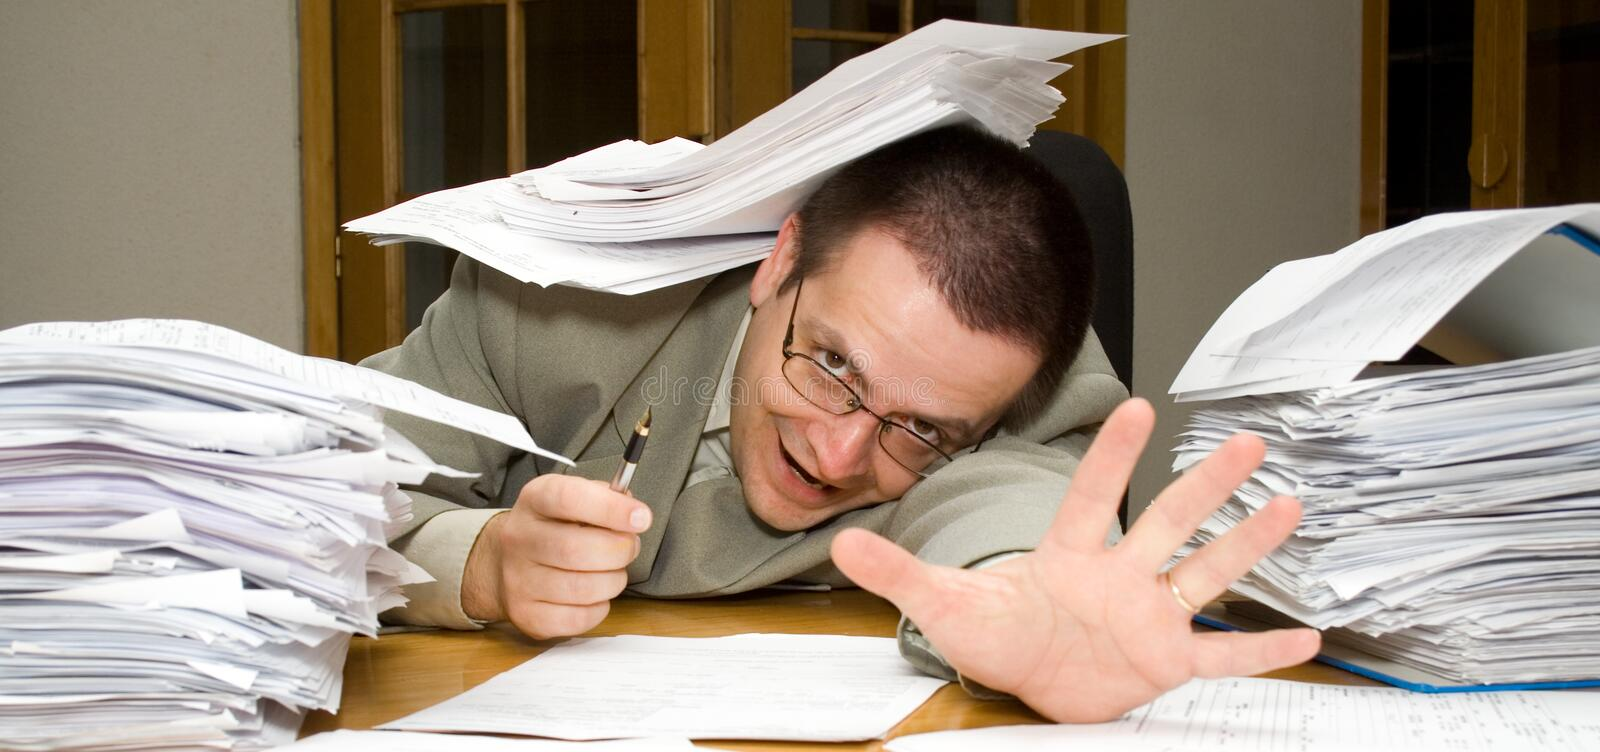 Deadline with paperwork royalty free stock photography